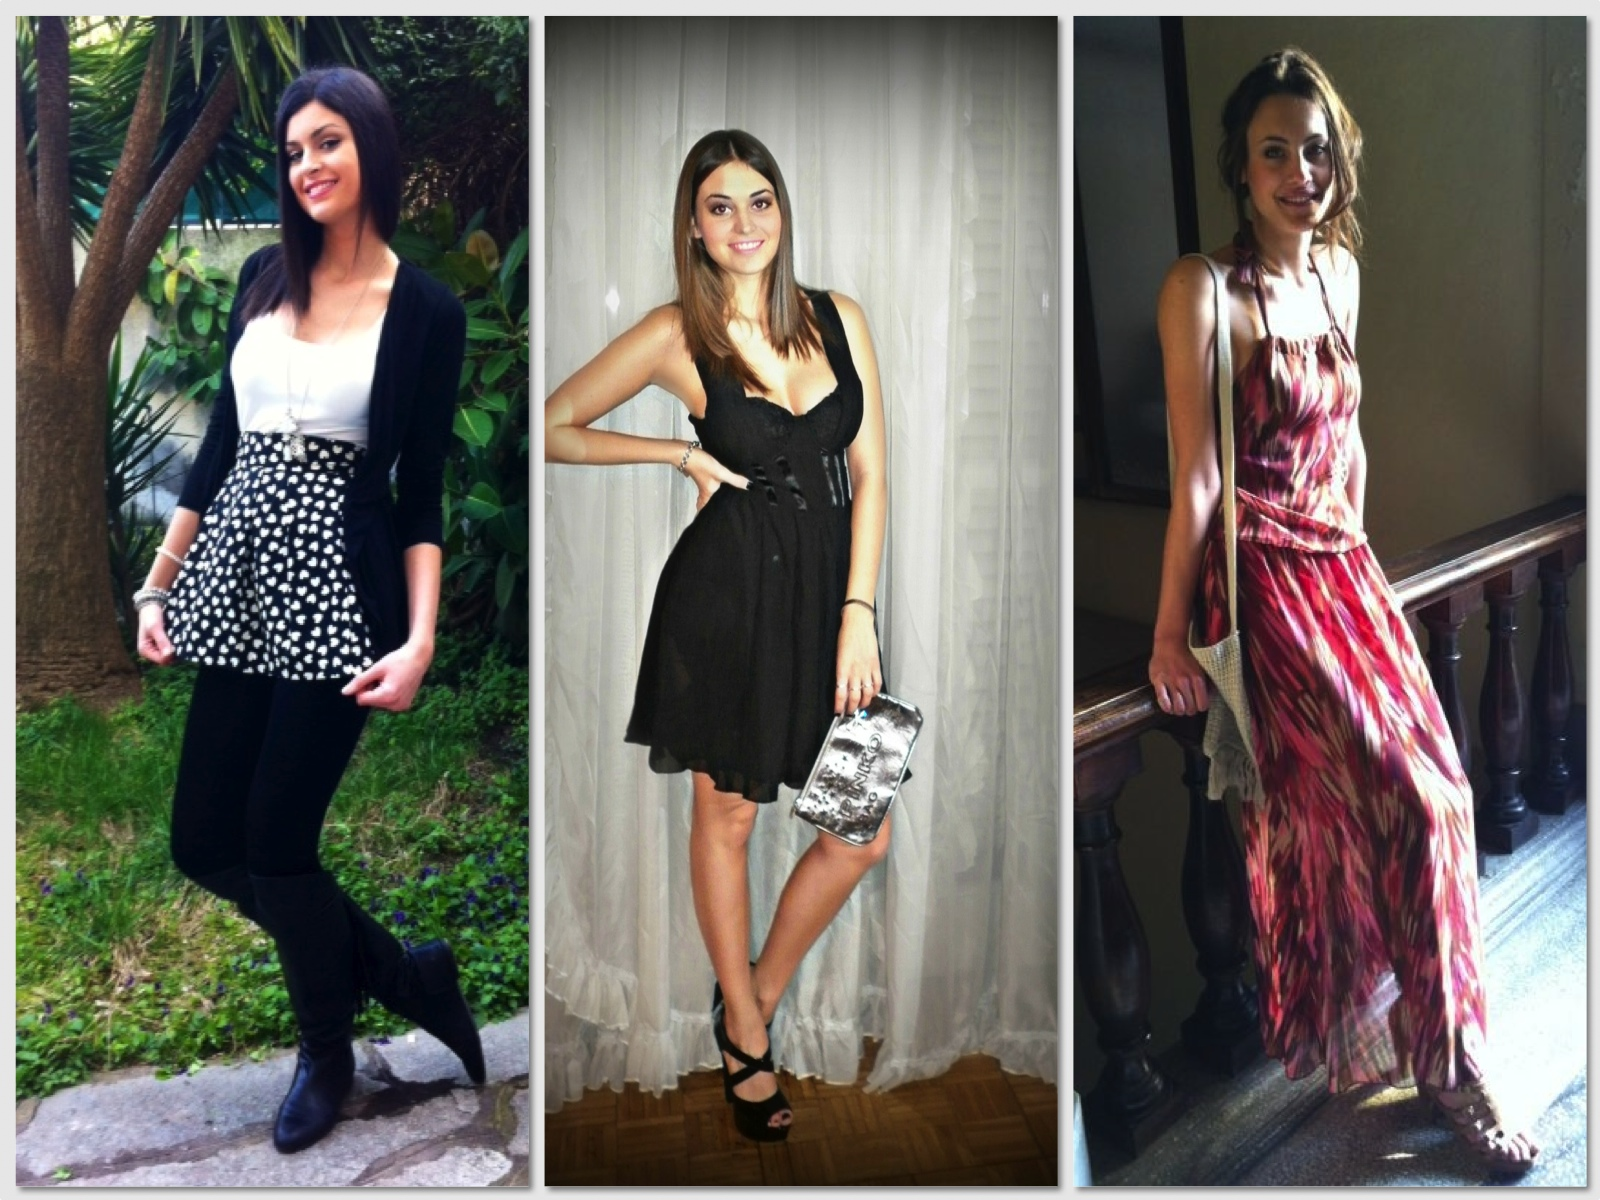 miss italia outfits1 Miss Italia: choose the best outfit!